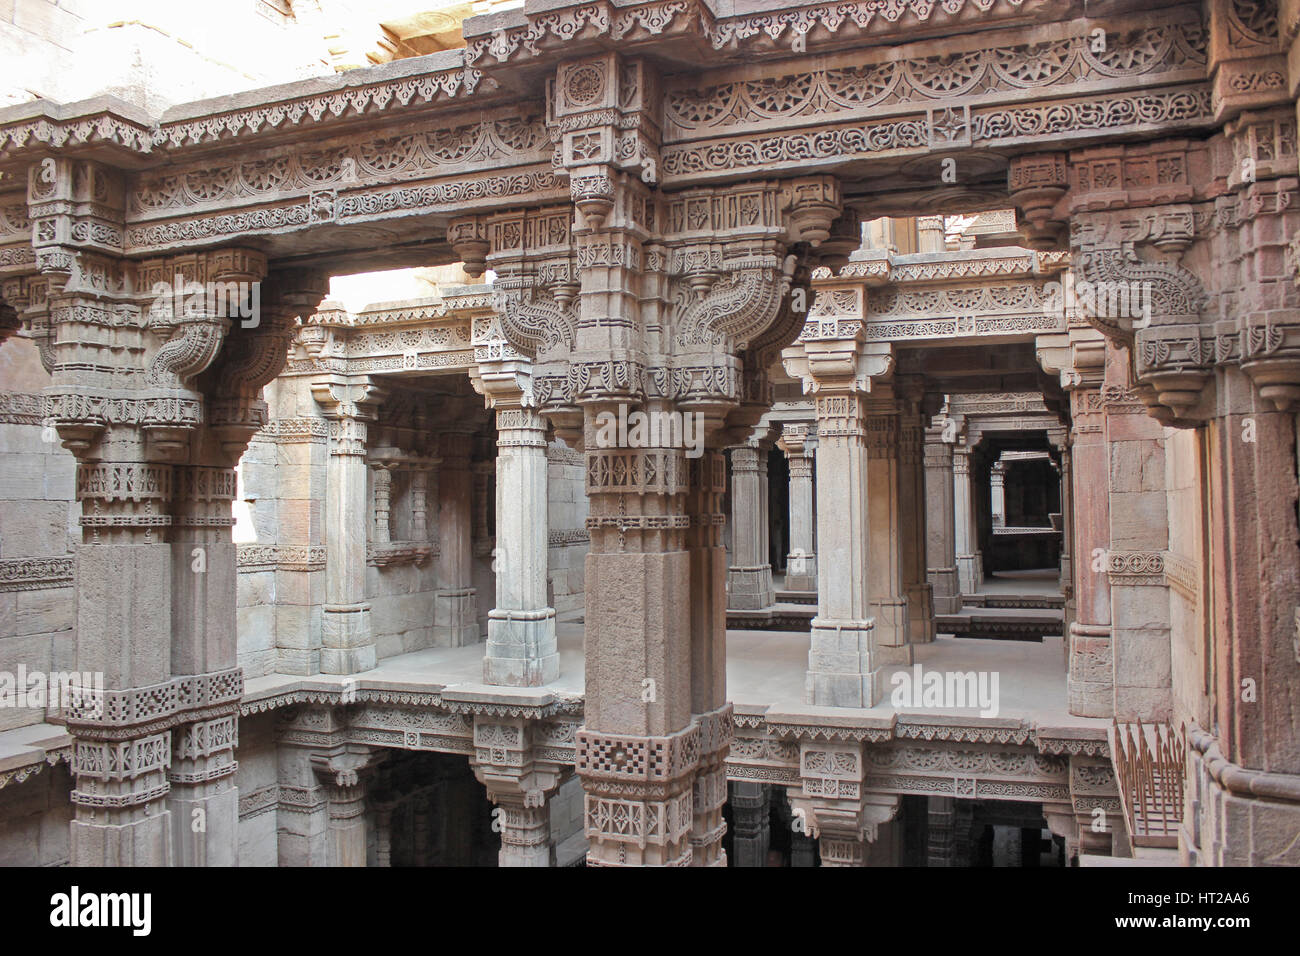 Upper storeys with intricate stone carvings on pillars, pilaster and entablature. Adalaj Stepwell, Ahmedabad, Gujarat, - Stock Image